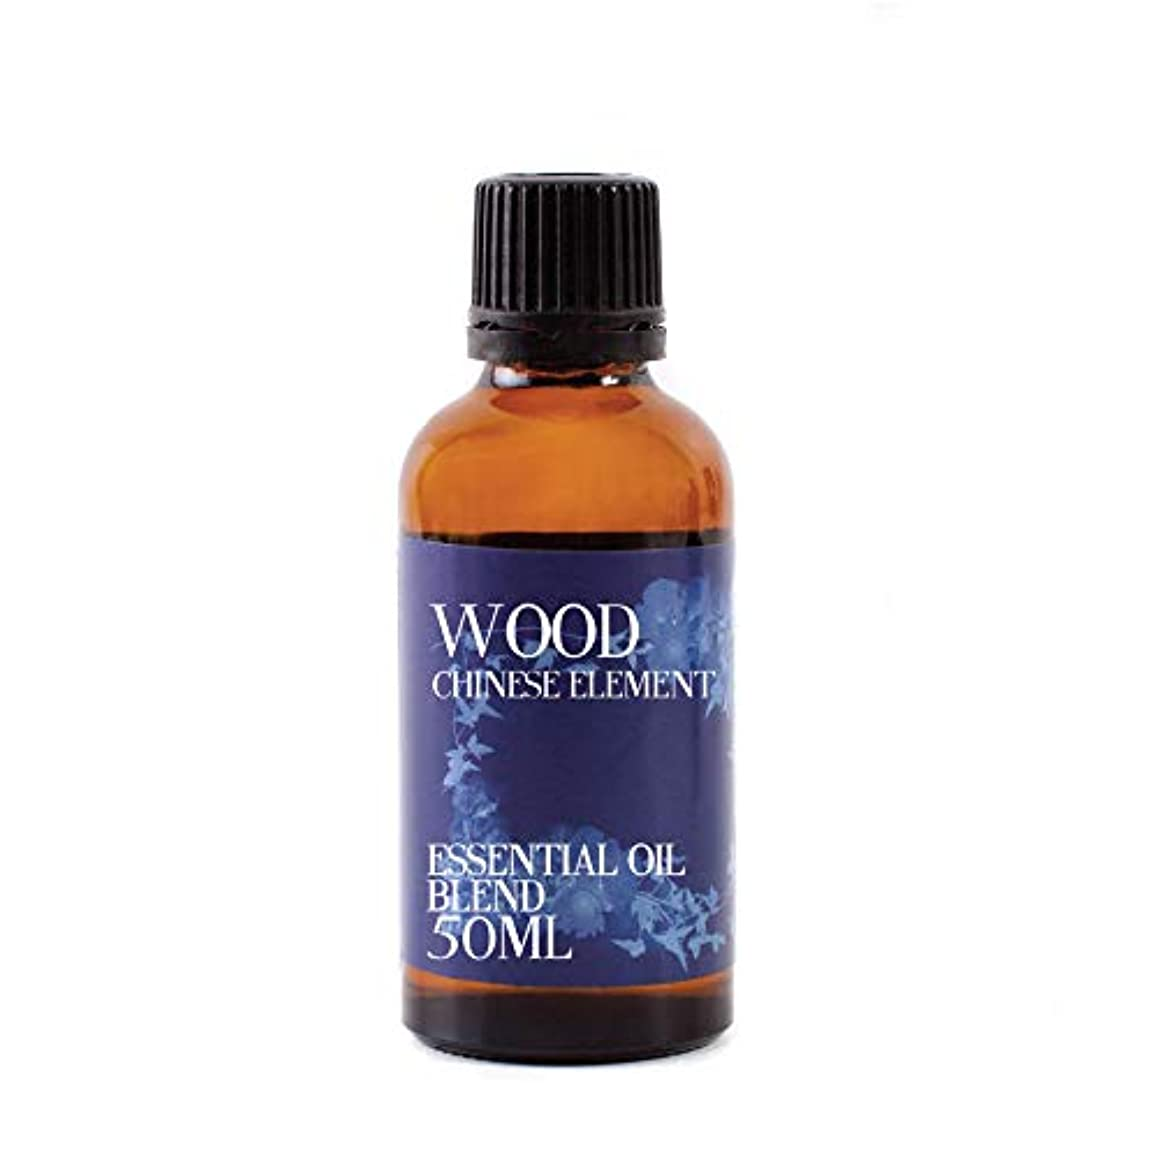 忘れっぽいカウンターパートストレンジャーMystix London | Chinese Wood Element Essential Oil Blend - 50ml